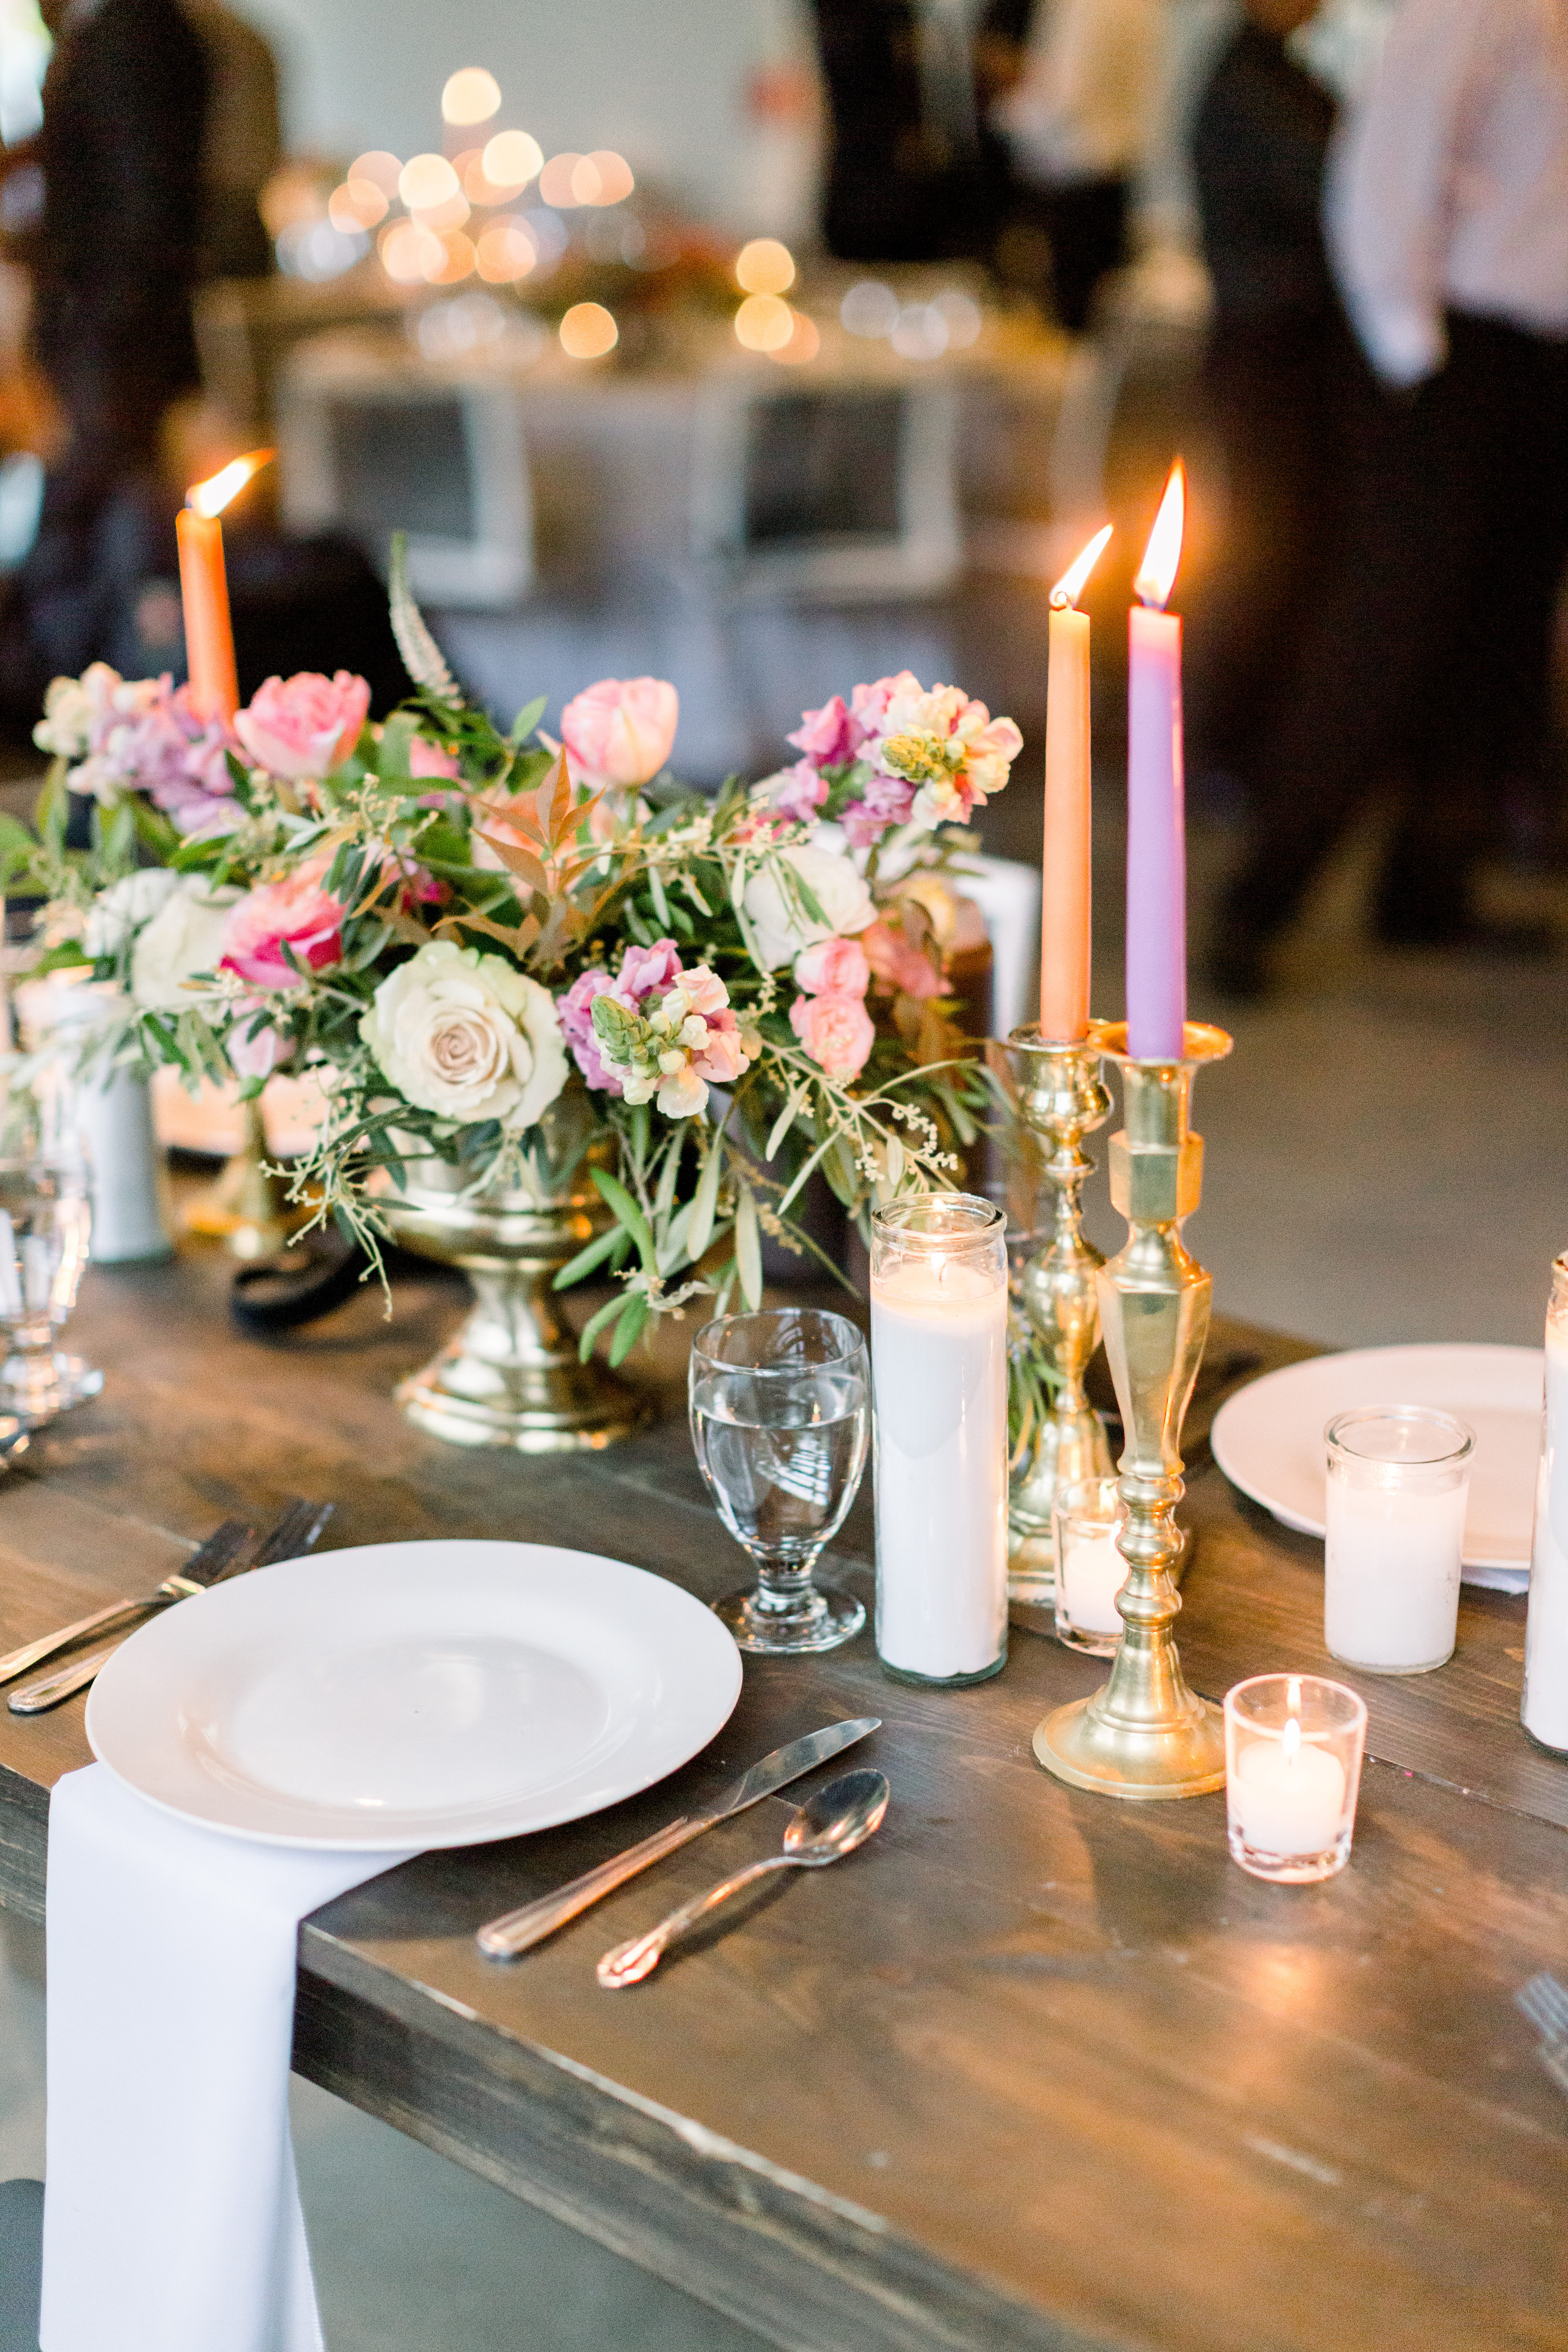 Wooden table with bright candles and flowers at wedding in Northwest Arkansas